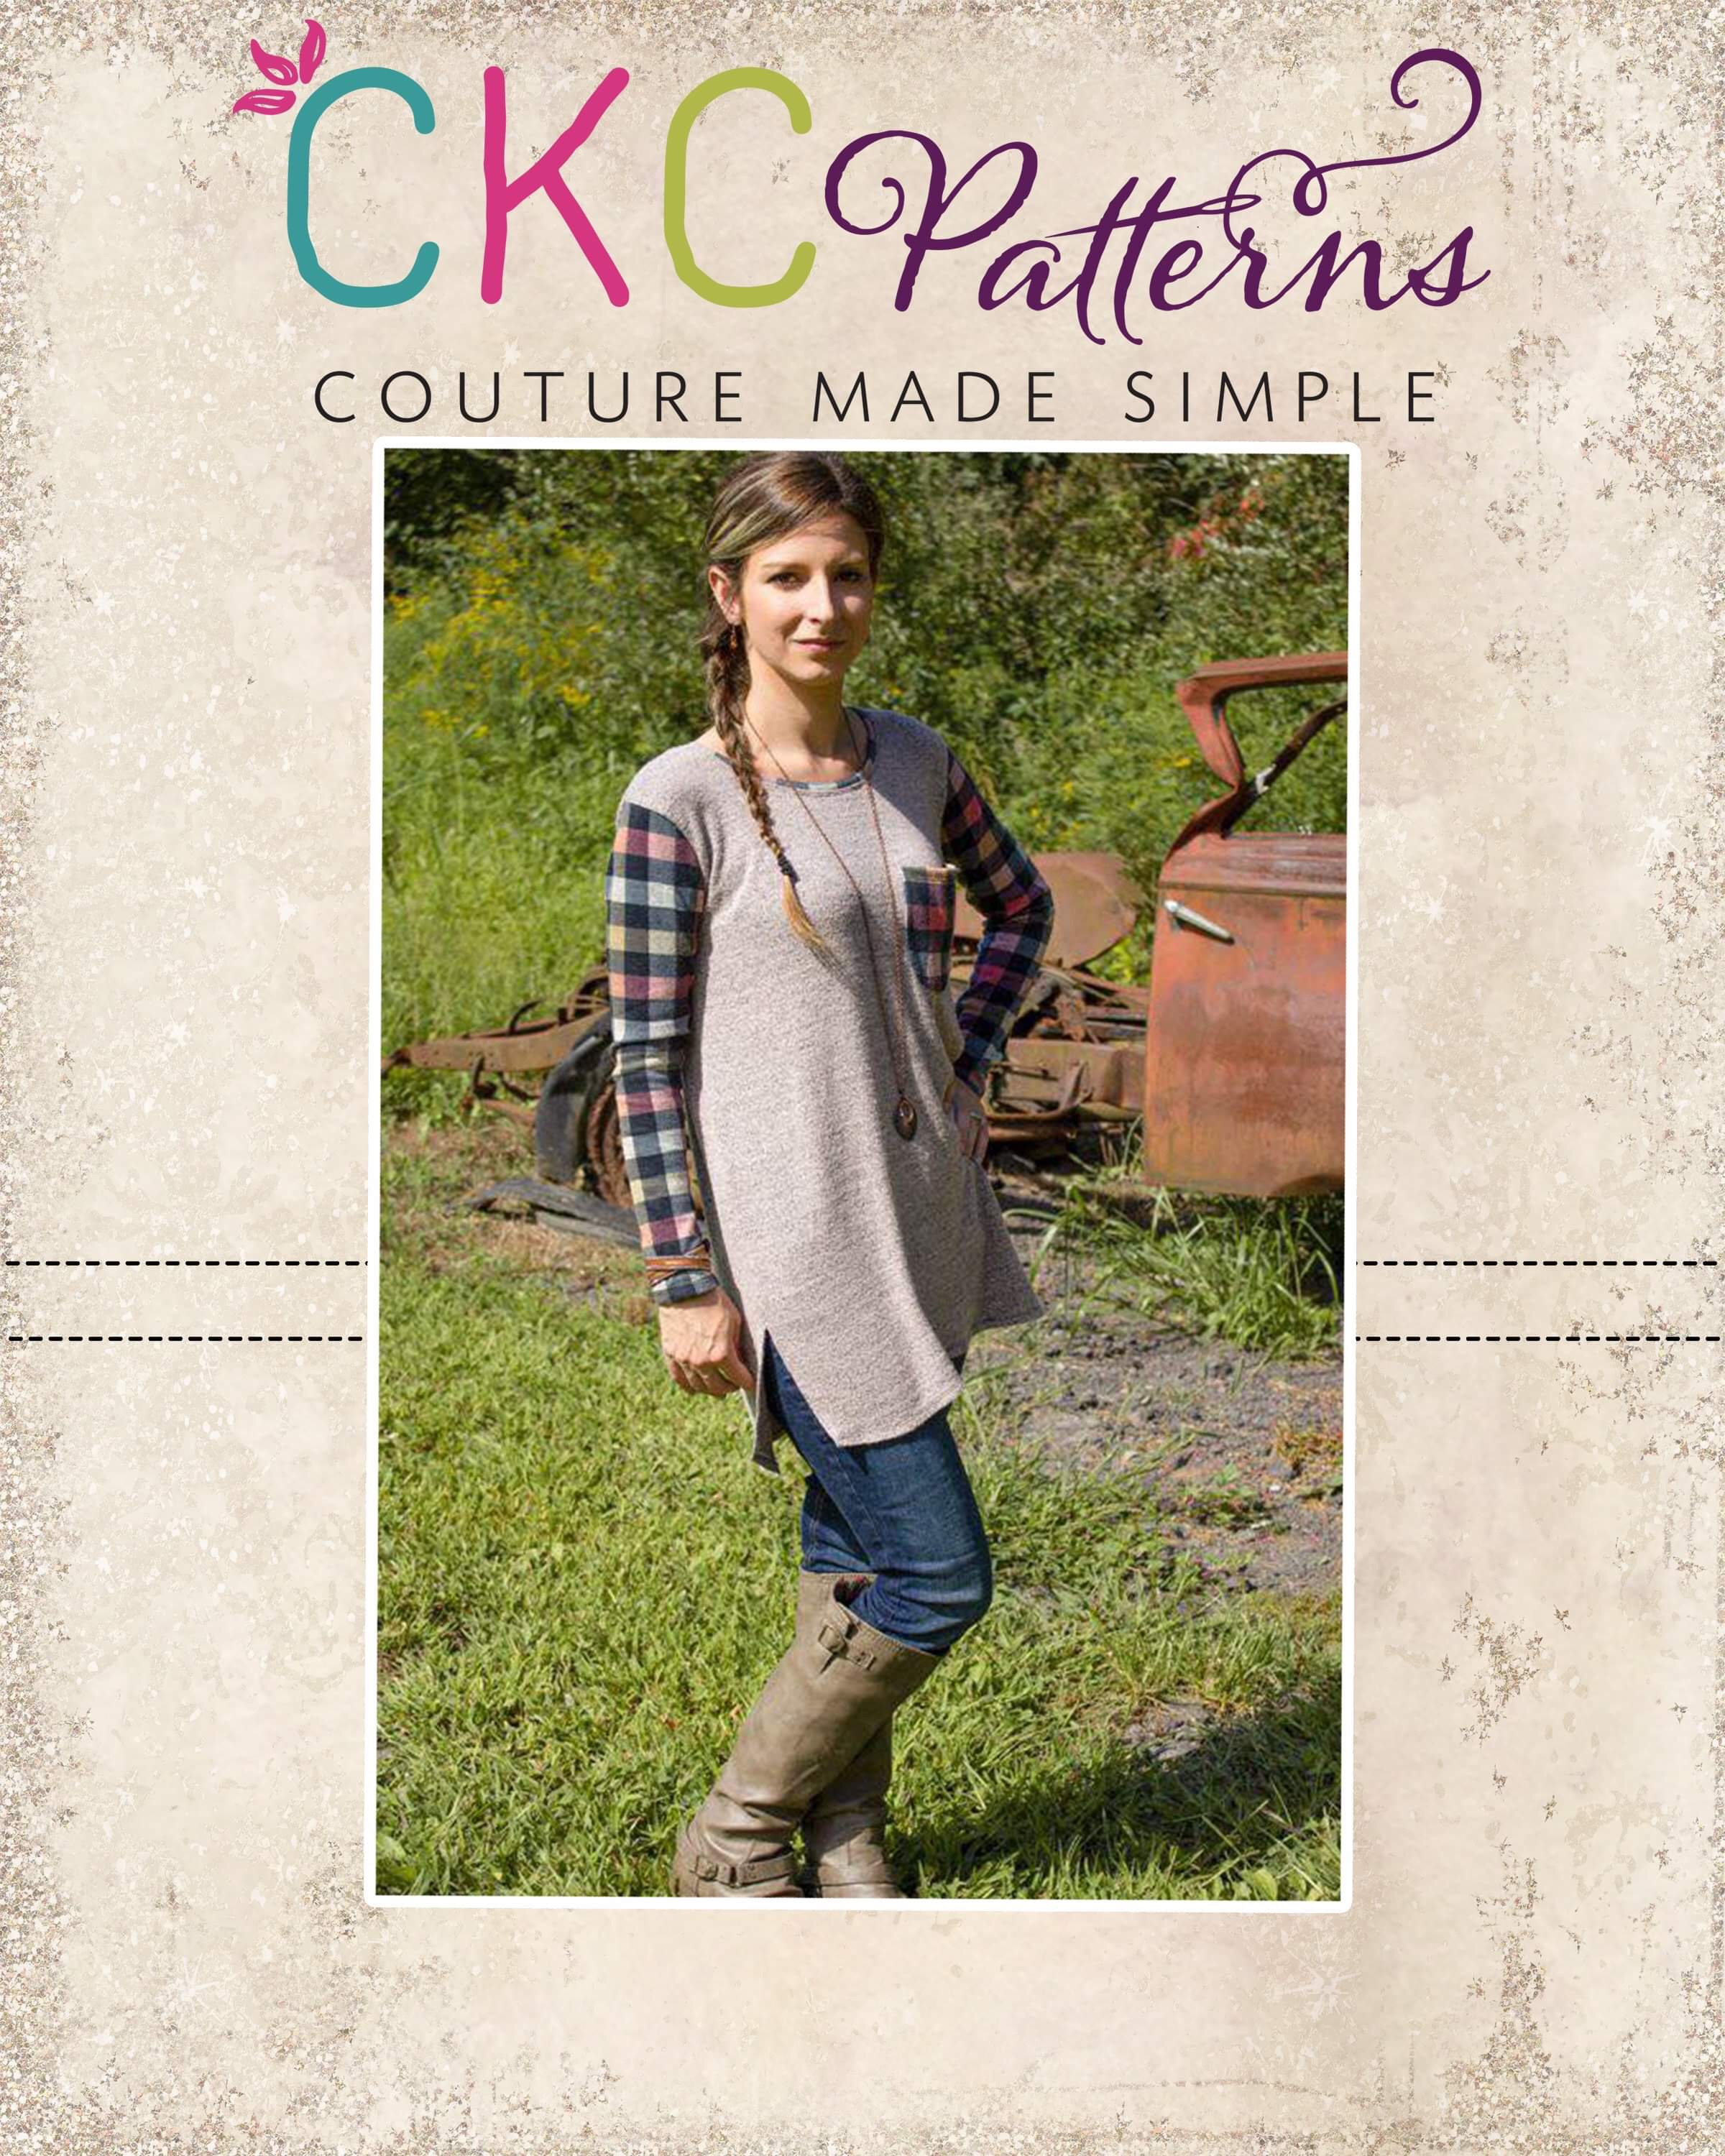 Reed's Relaxed Fit Crop, Tee, Tunic, & Dress Sizes XXS to 3X Adults PDF Pattern